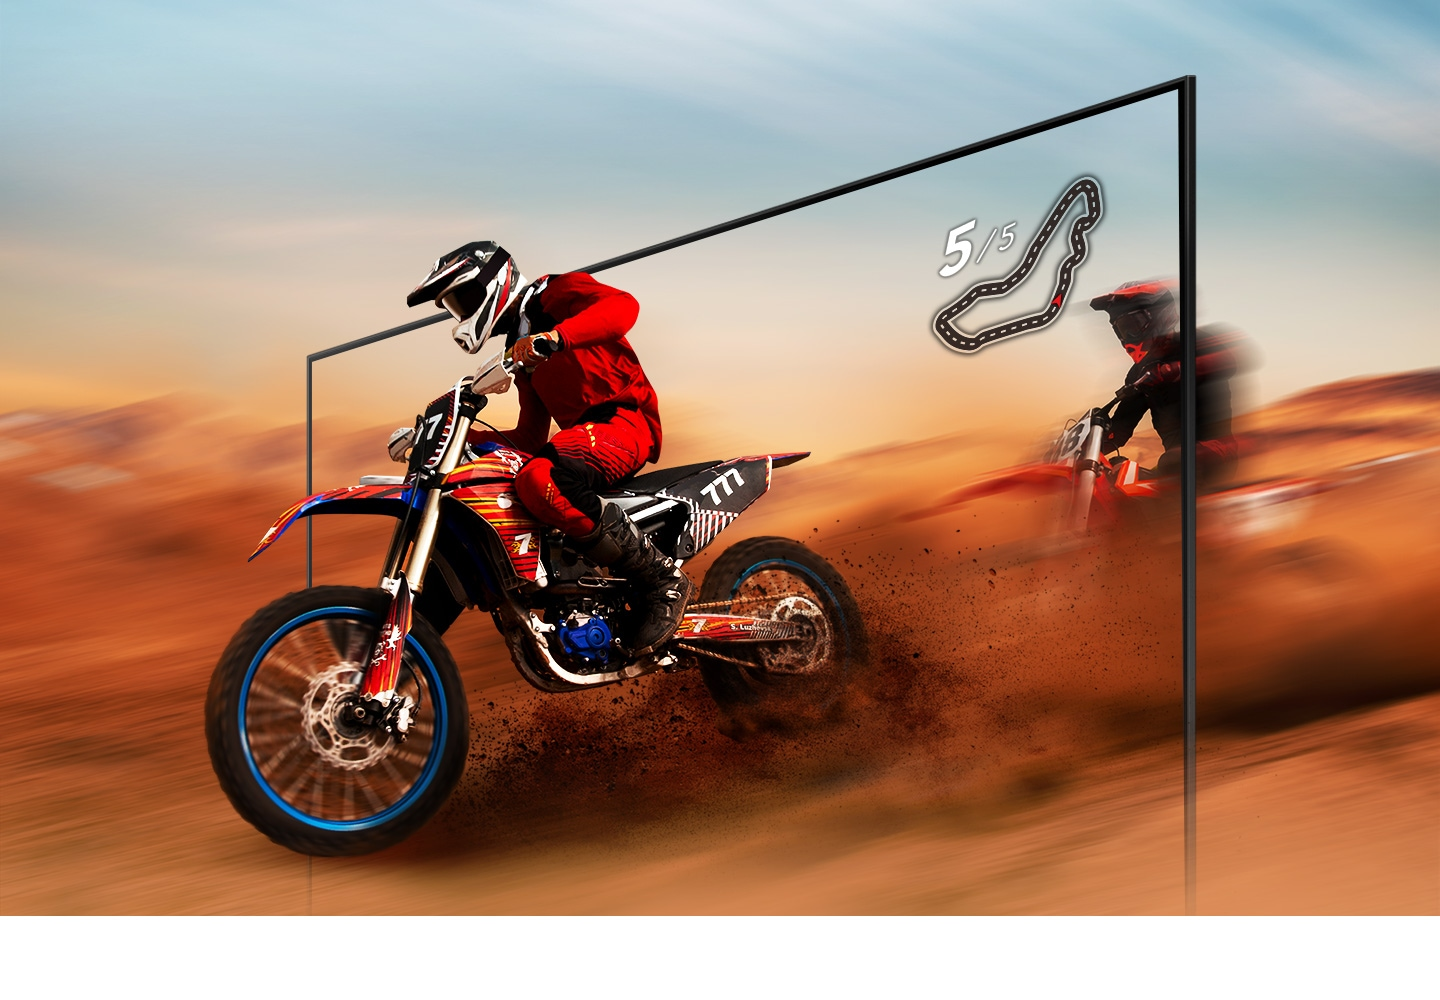 A dirt bike racer looks clear and visible inside the UHD TV screen because of UHD TV motion xcelerator technology.